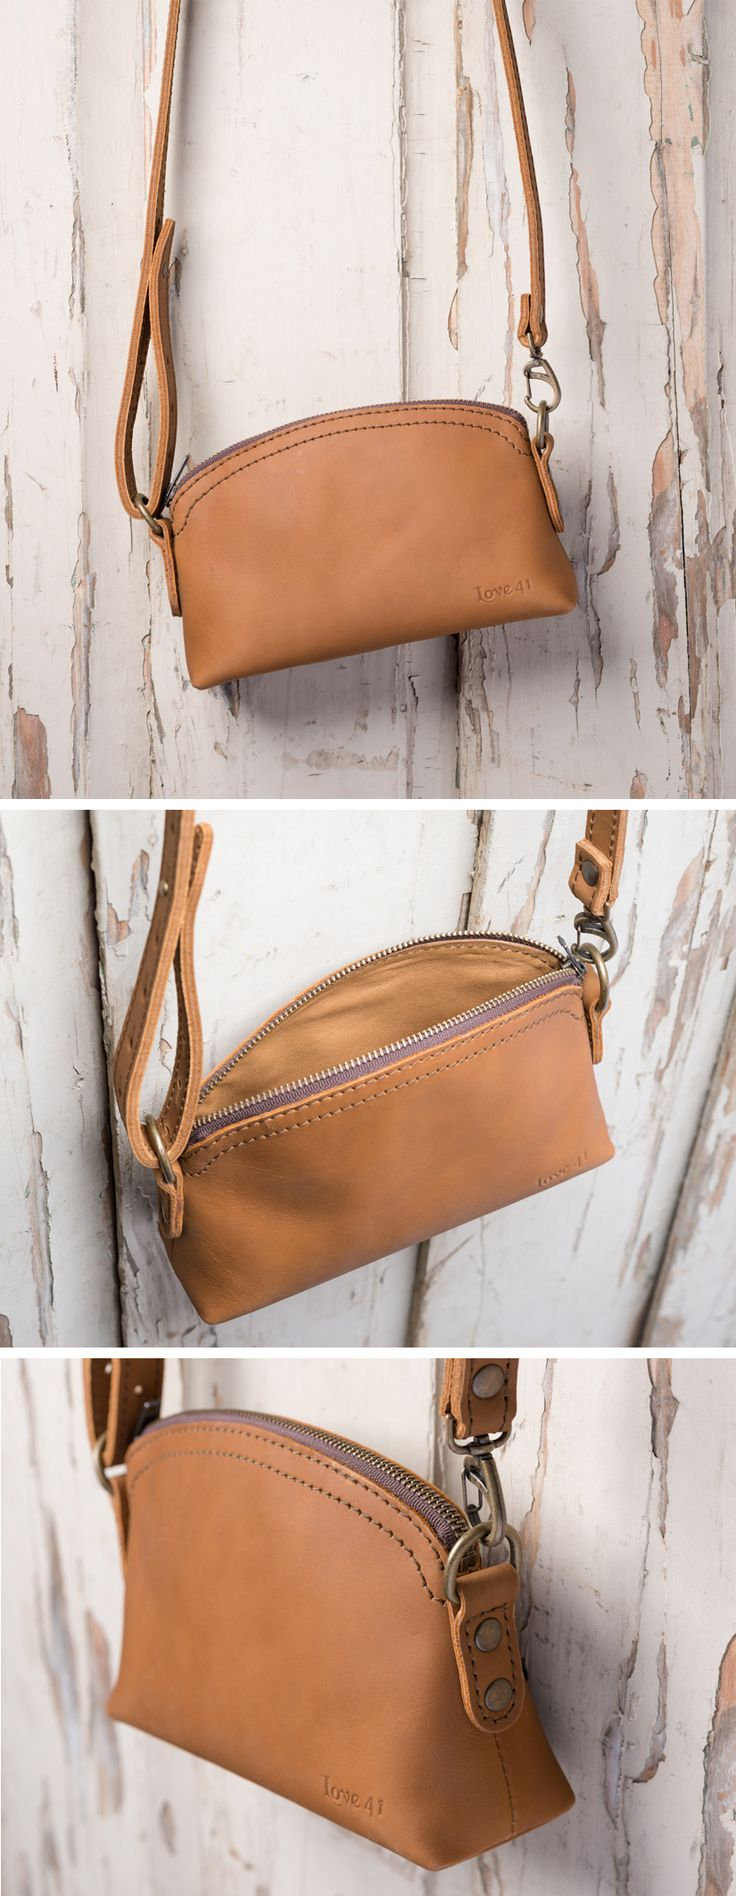 """I wanted a make up bag that wasn't made out of plastic or looked like it belonged to my daughter.  This bag not only looks grown up and sophisticated but the fact that it can be converted into a small purse makes it a """"must have"""" make up bag. Leather Cosmetic Bag by Love 41."""